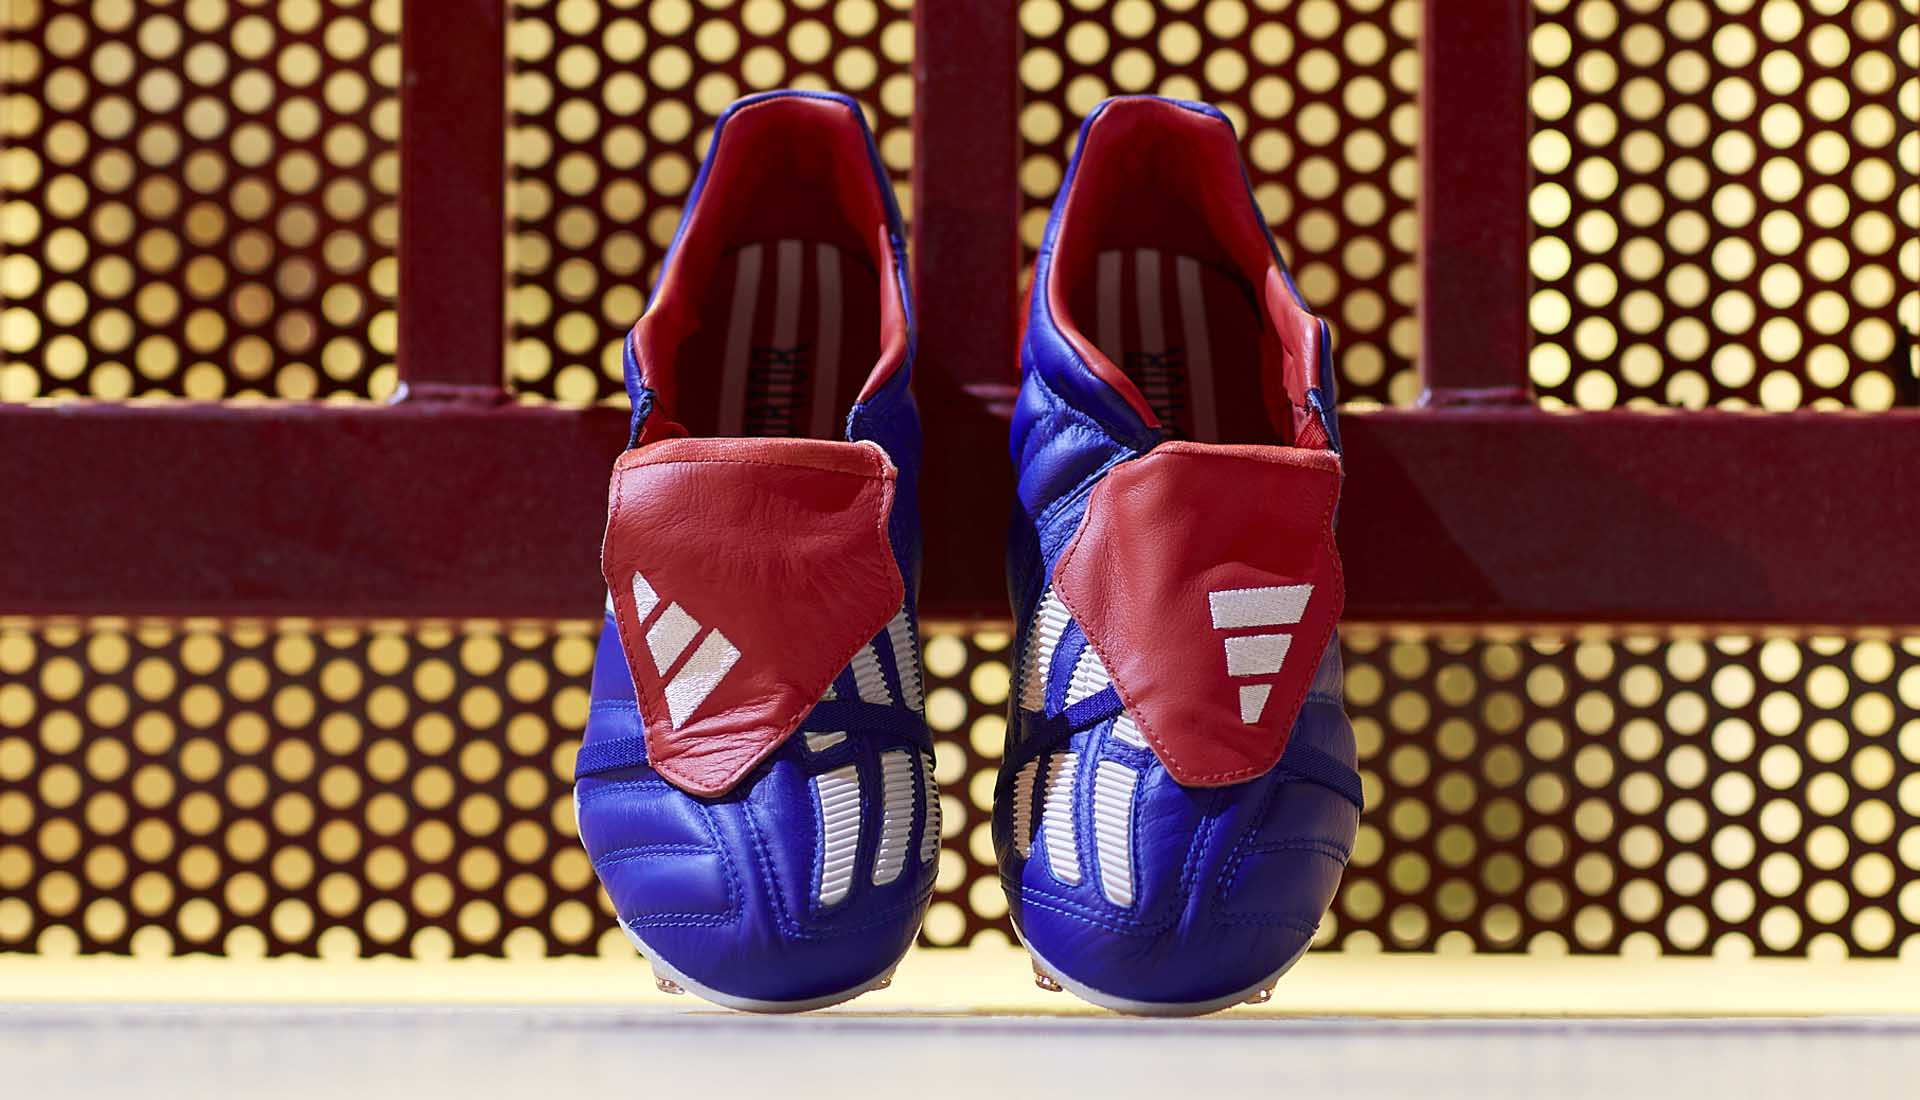 Next Gen Adidas Predator 20 To Be Launched Tomorrow